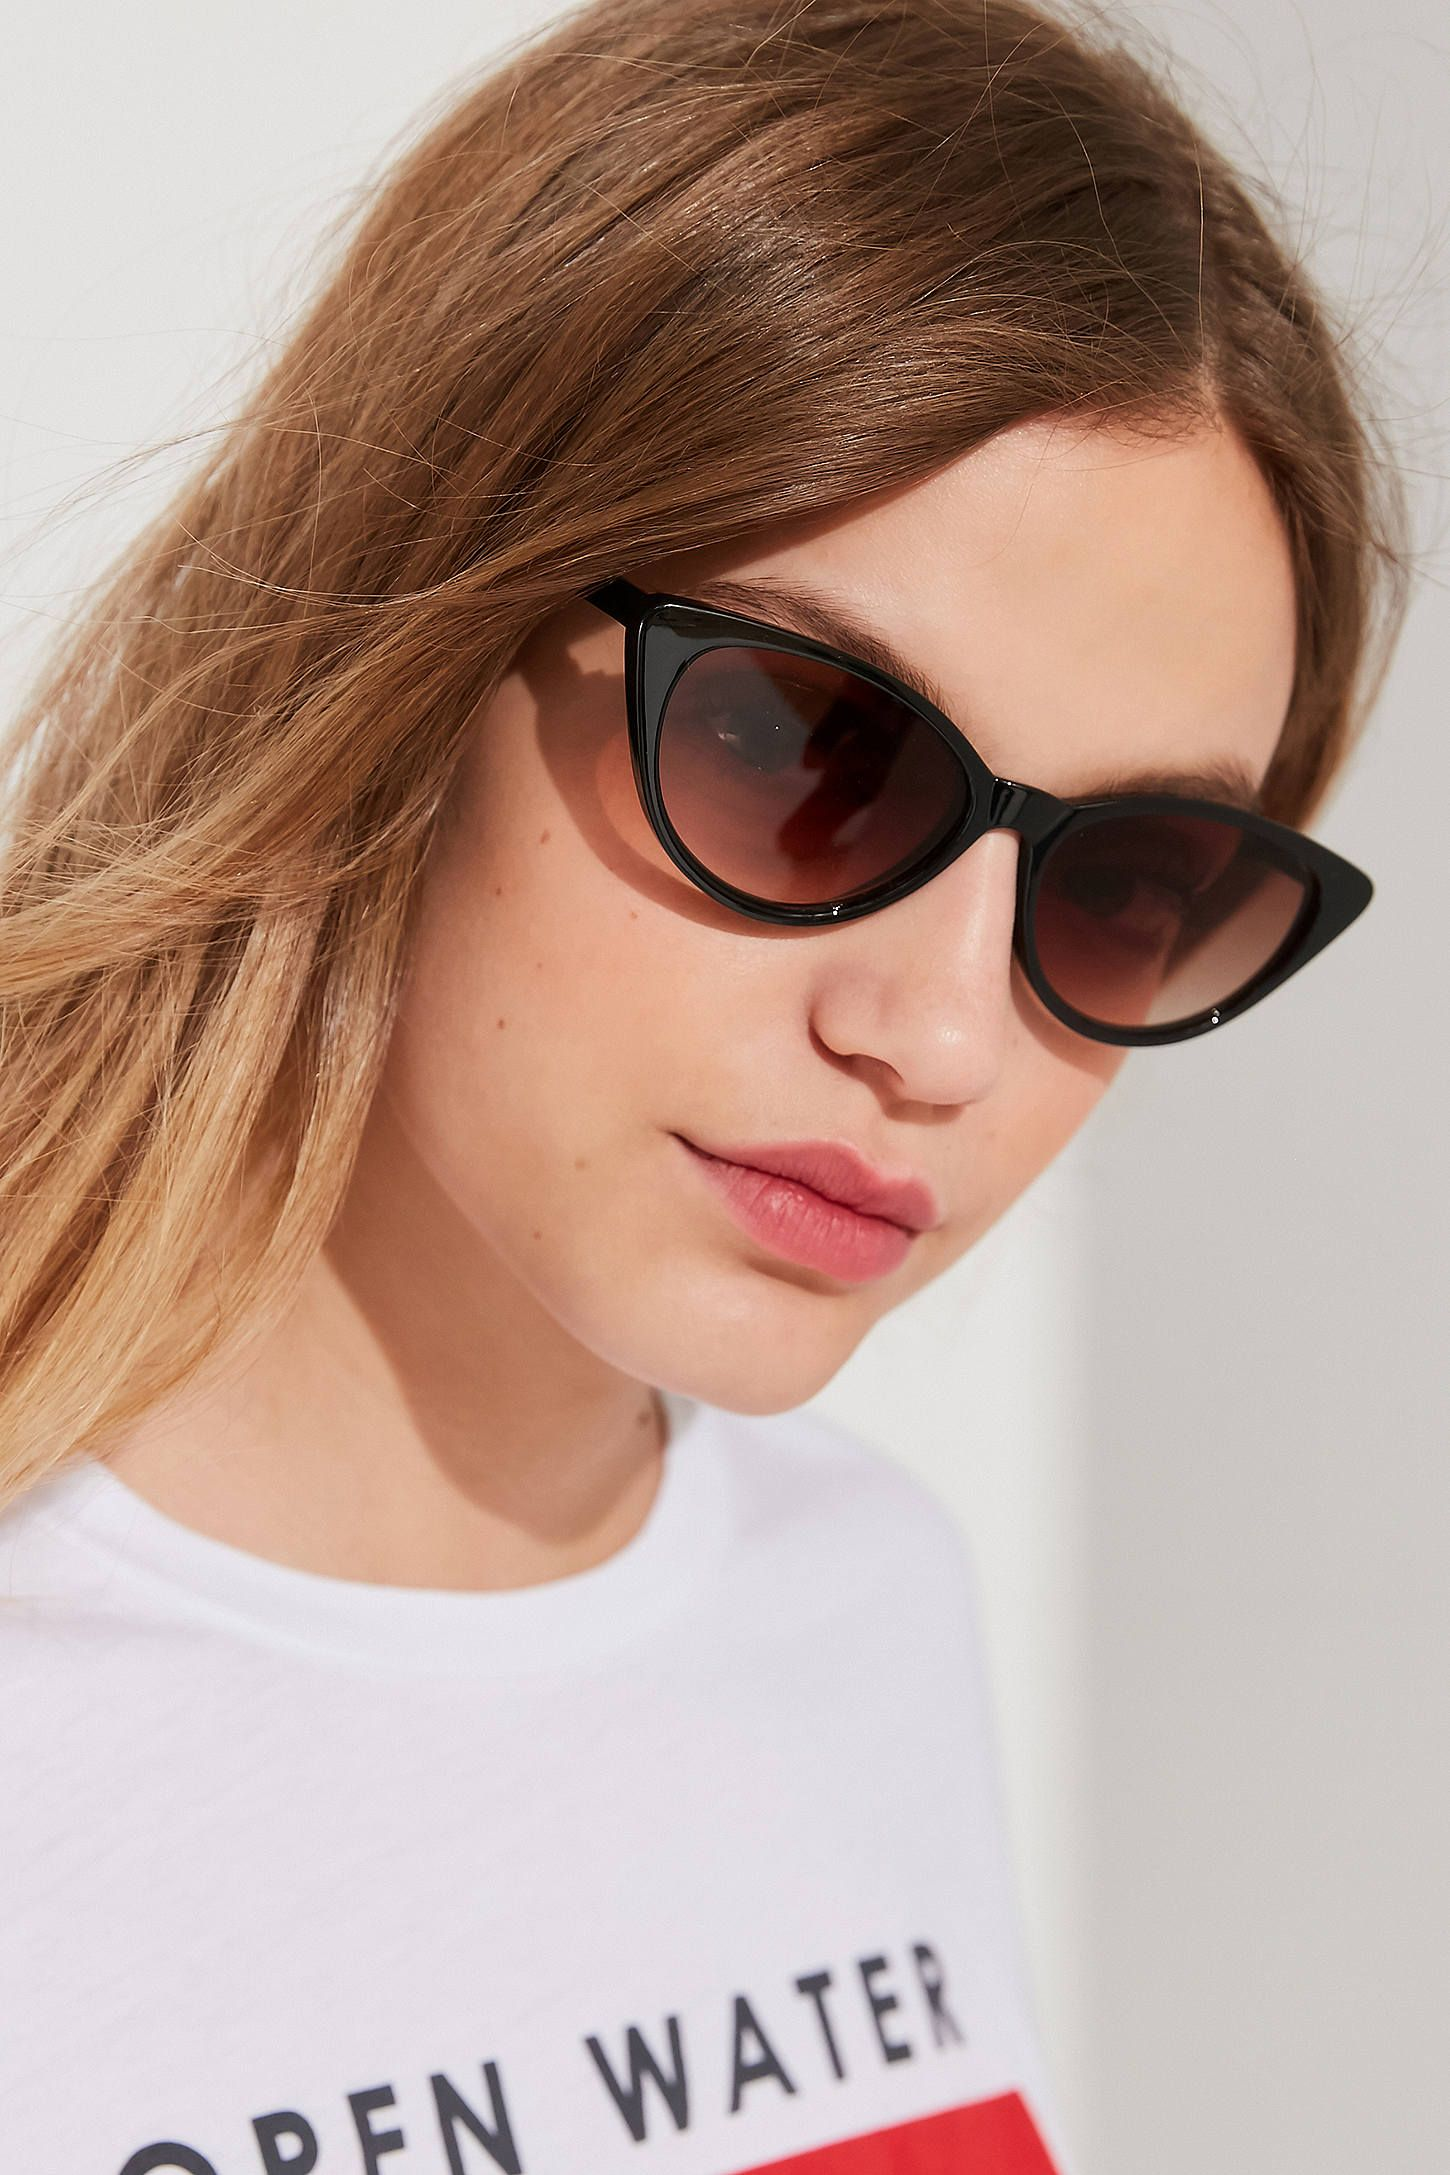 90130fe30 Shop Slim Retro Cat-Eye Sunglasses at Urban Outfitters today. We carry all  the latest styles, colors and brands for you to choose from right here.